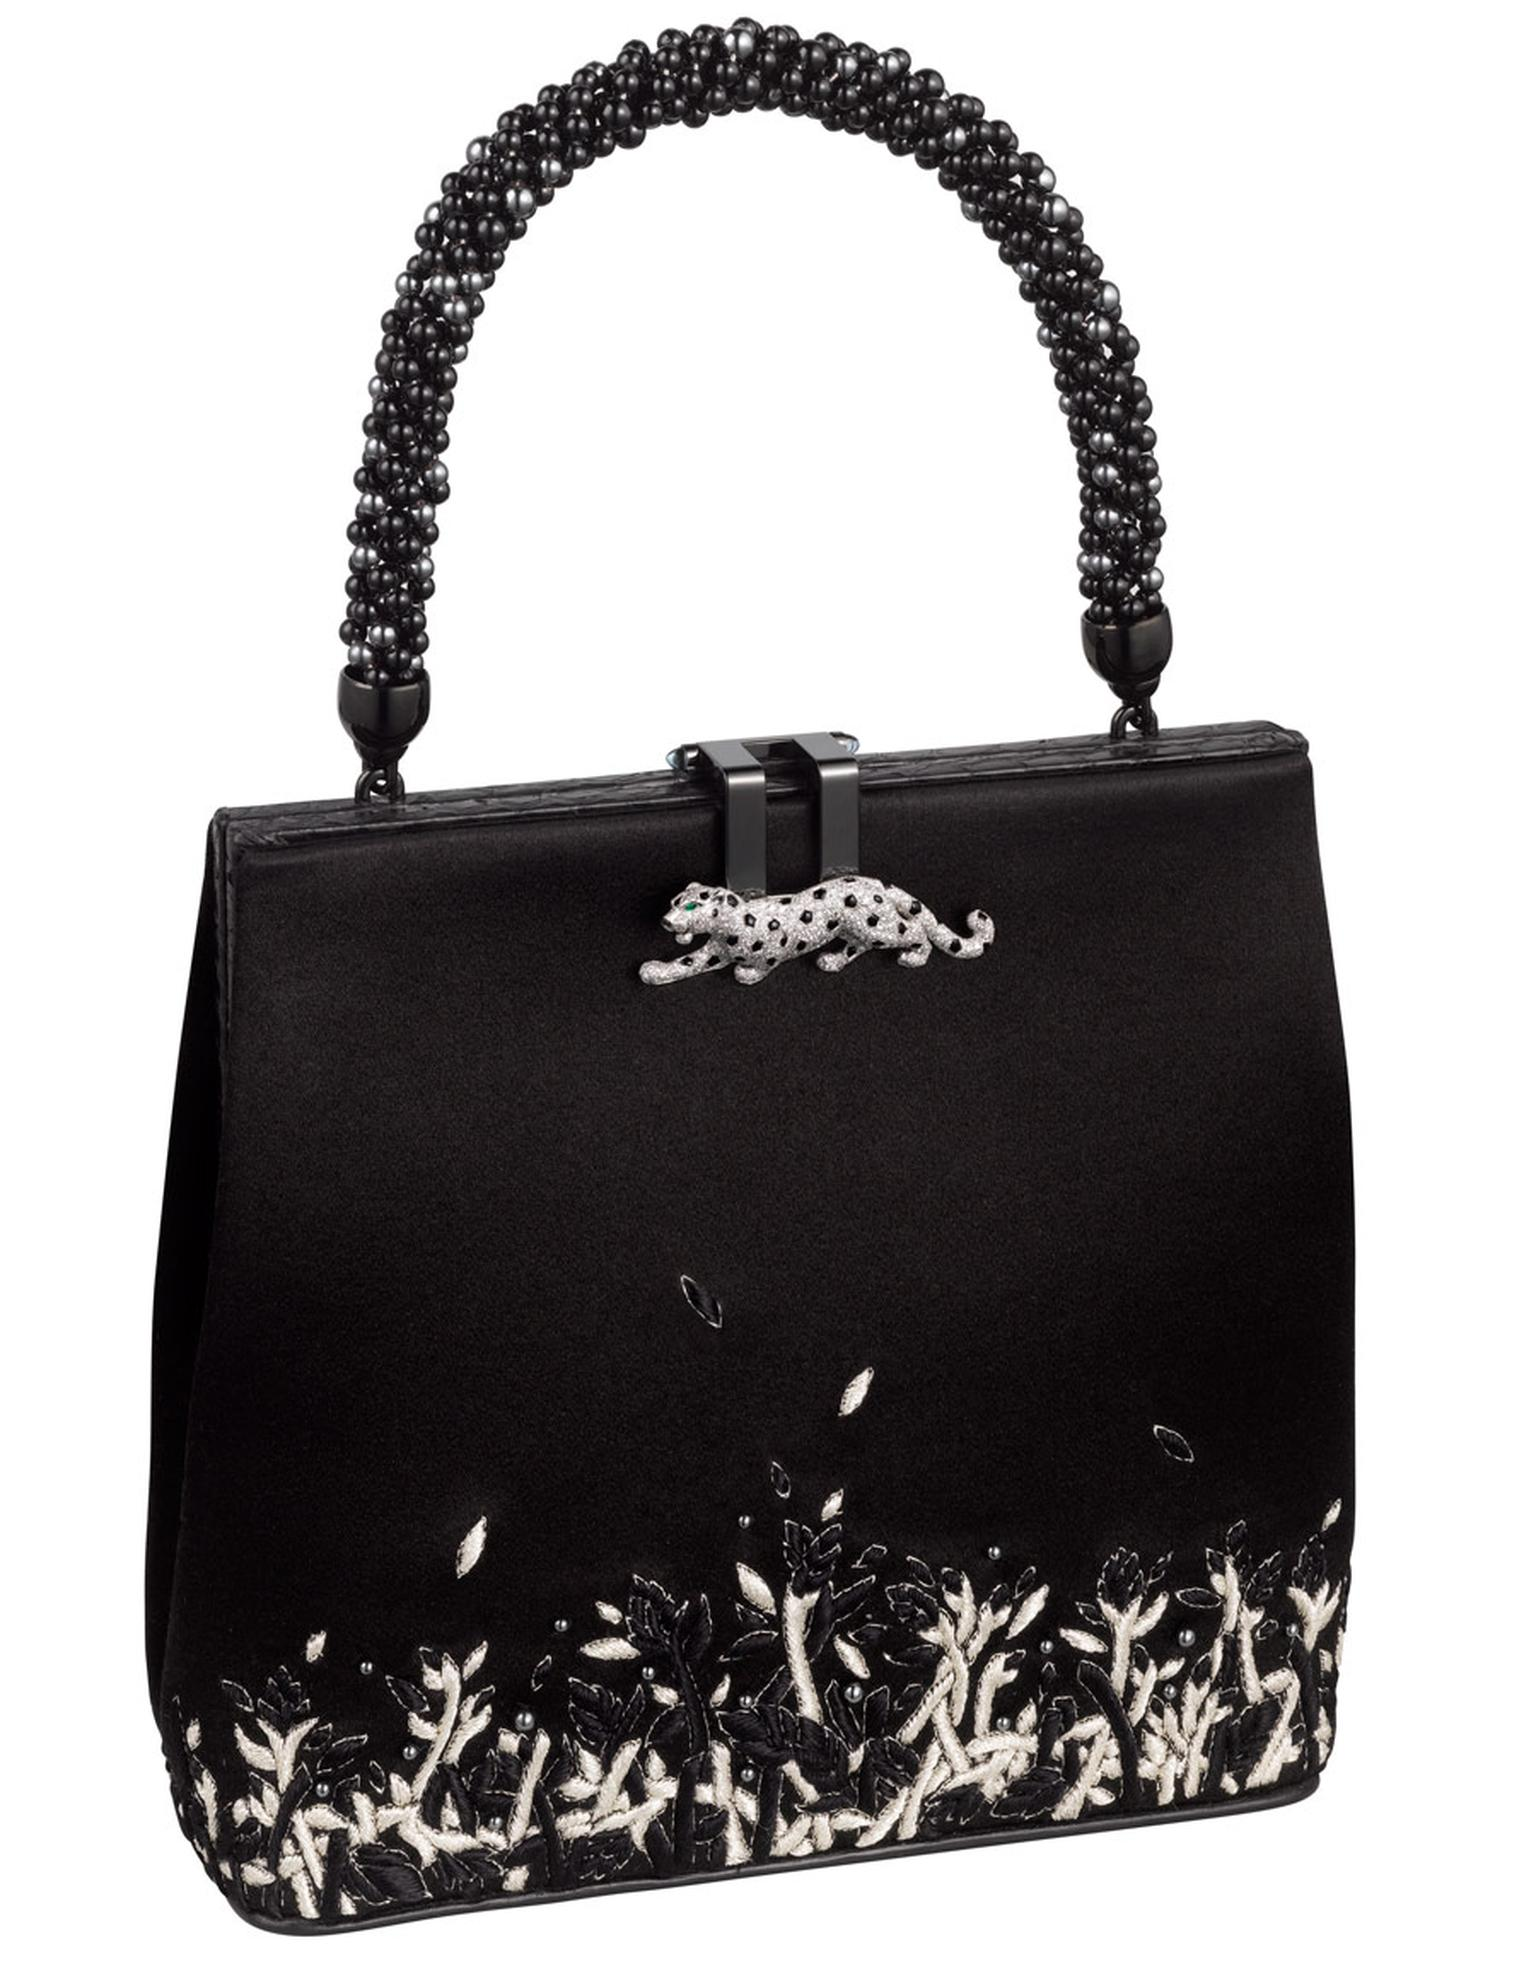 Cartier-Luxuriant-Bag-2.jpg